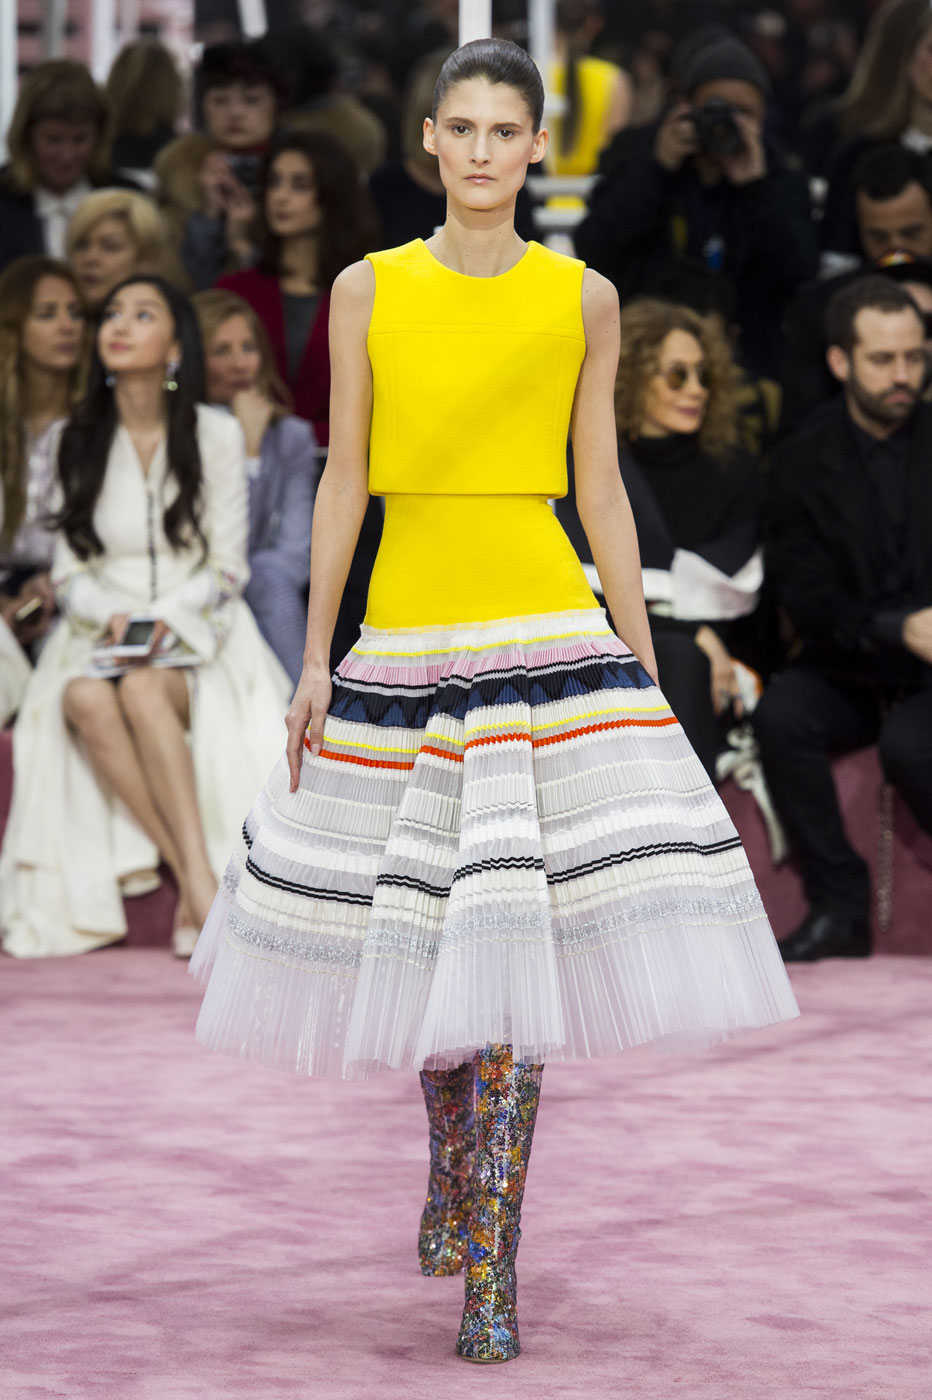 Christian-Dior-fashion-runway-show-haute-couture-paris-spring-summer-2015-the-impression-094